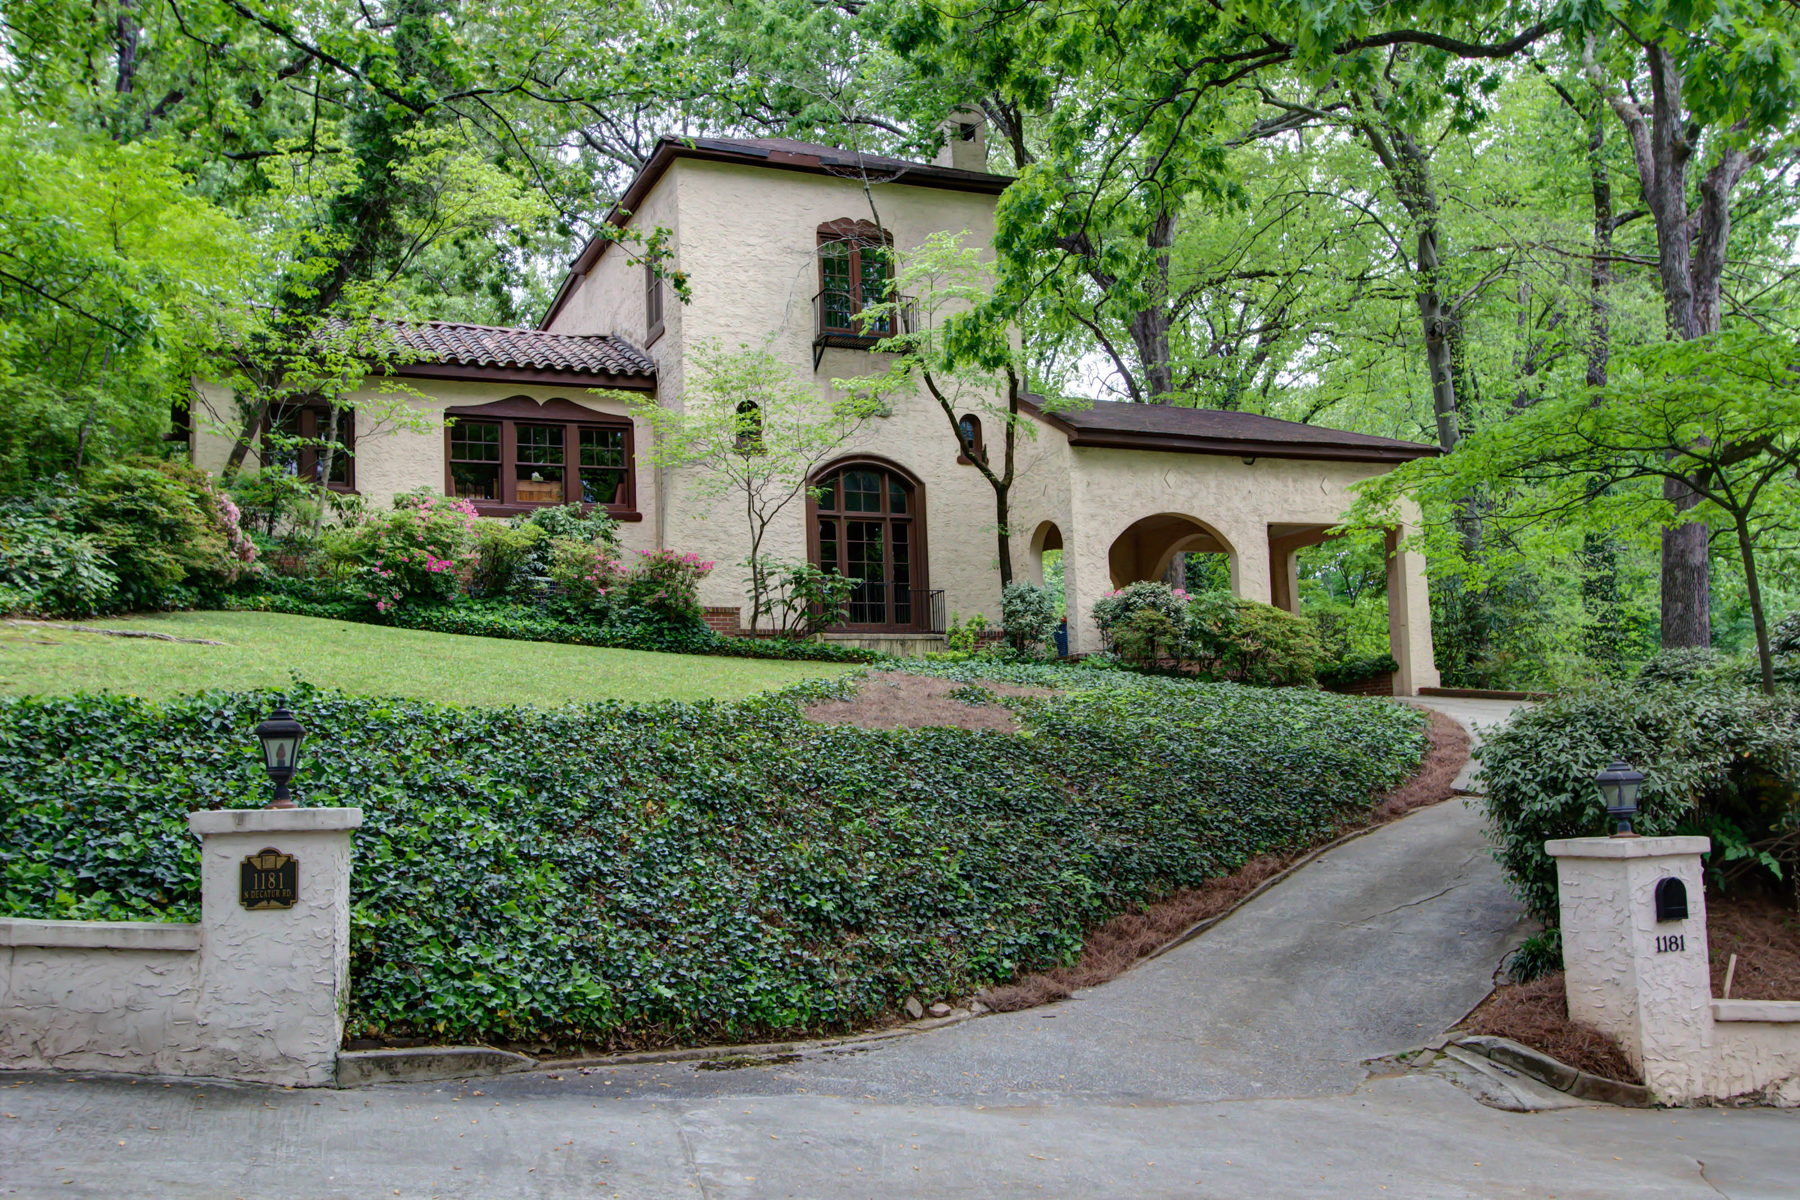 獨棟家庭住宅 為 出售 在 Spectacular Spanish Villa On Double Lot In Druid Hills 1181 N Decatur Road NE Druid Hills, Atlanta, 喬治亞州, 30306 美國